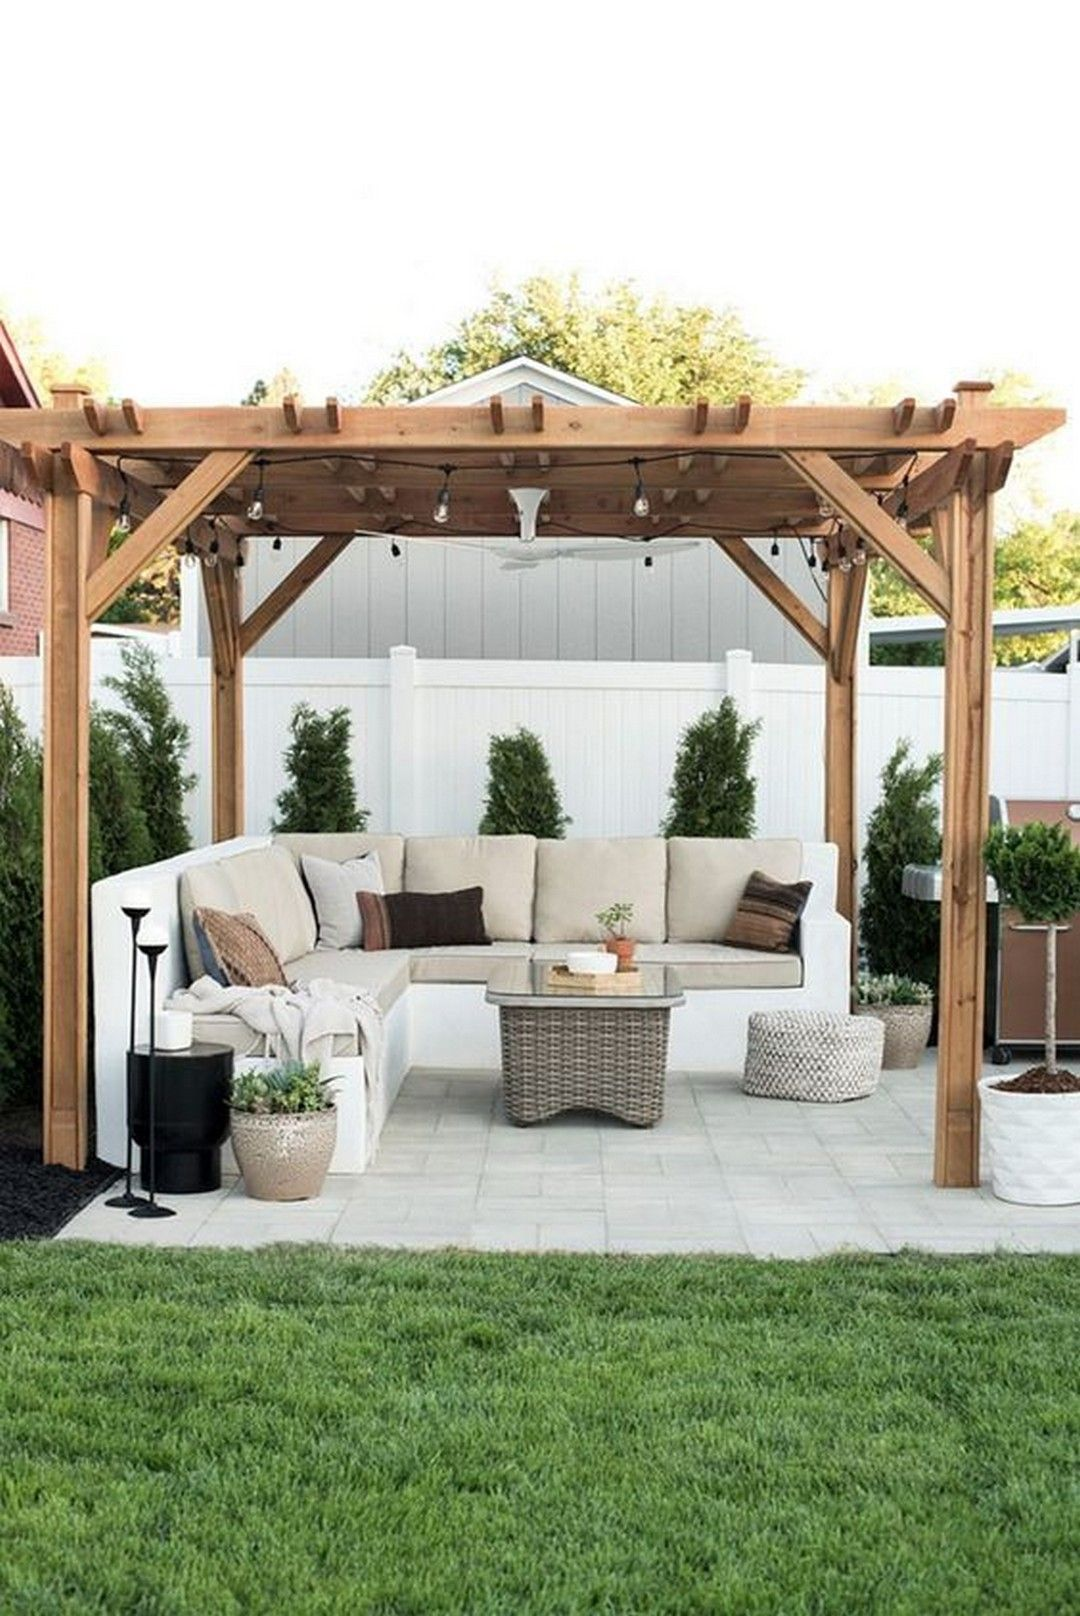 Creating Stunning Pergola Decorations With These Inspiring Ideas Idées Pergola Amenagement Jardin Deco Terrasse Exterieure